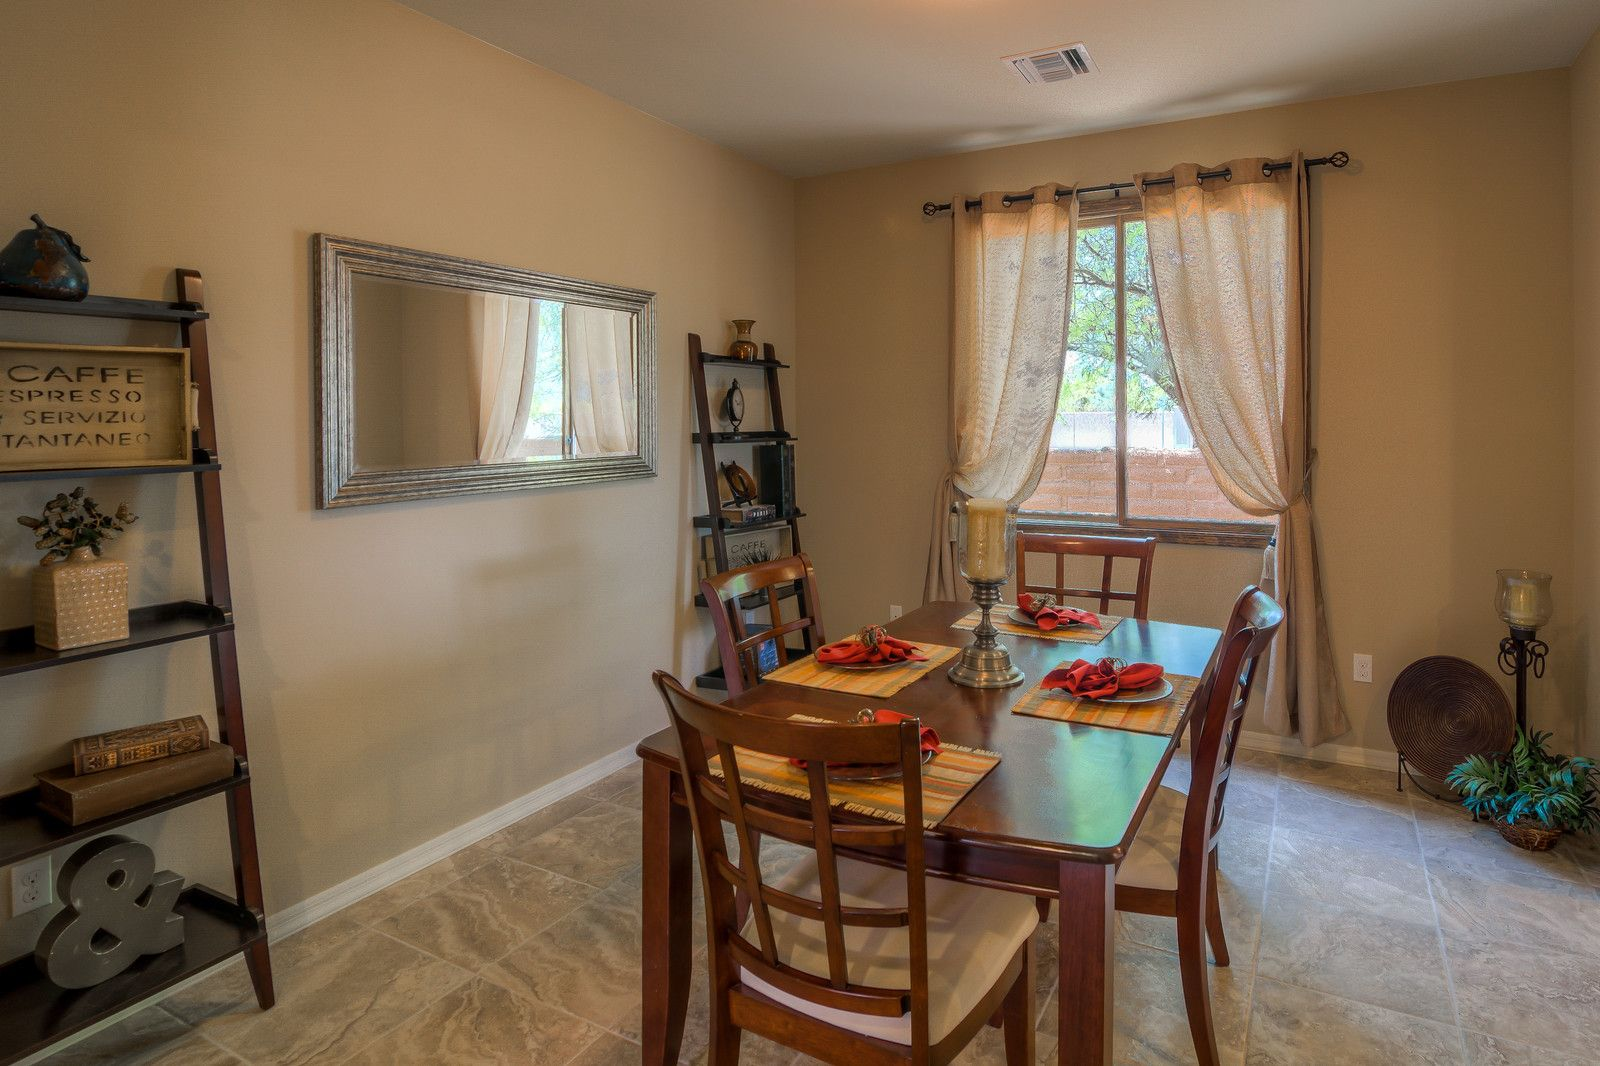 To learn more about this home for sale at n pelado pl tucson